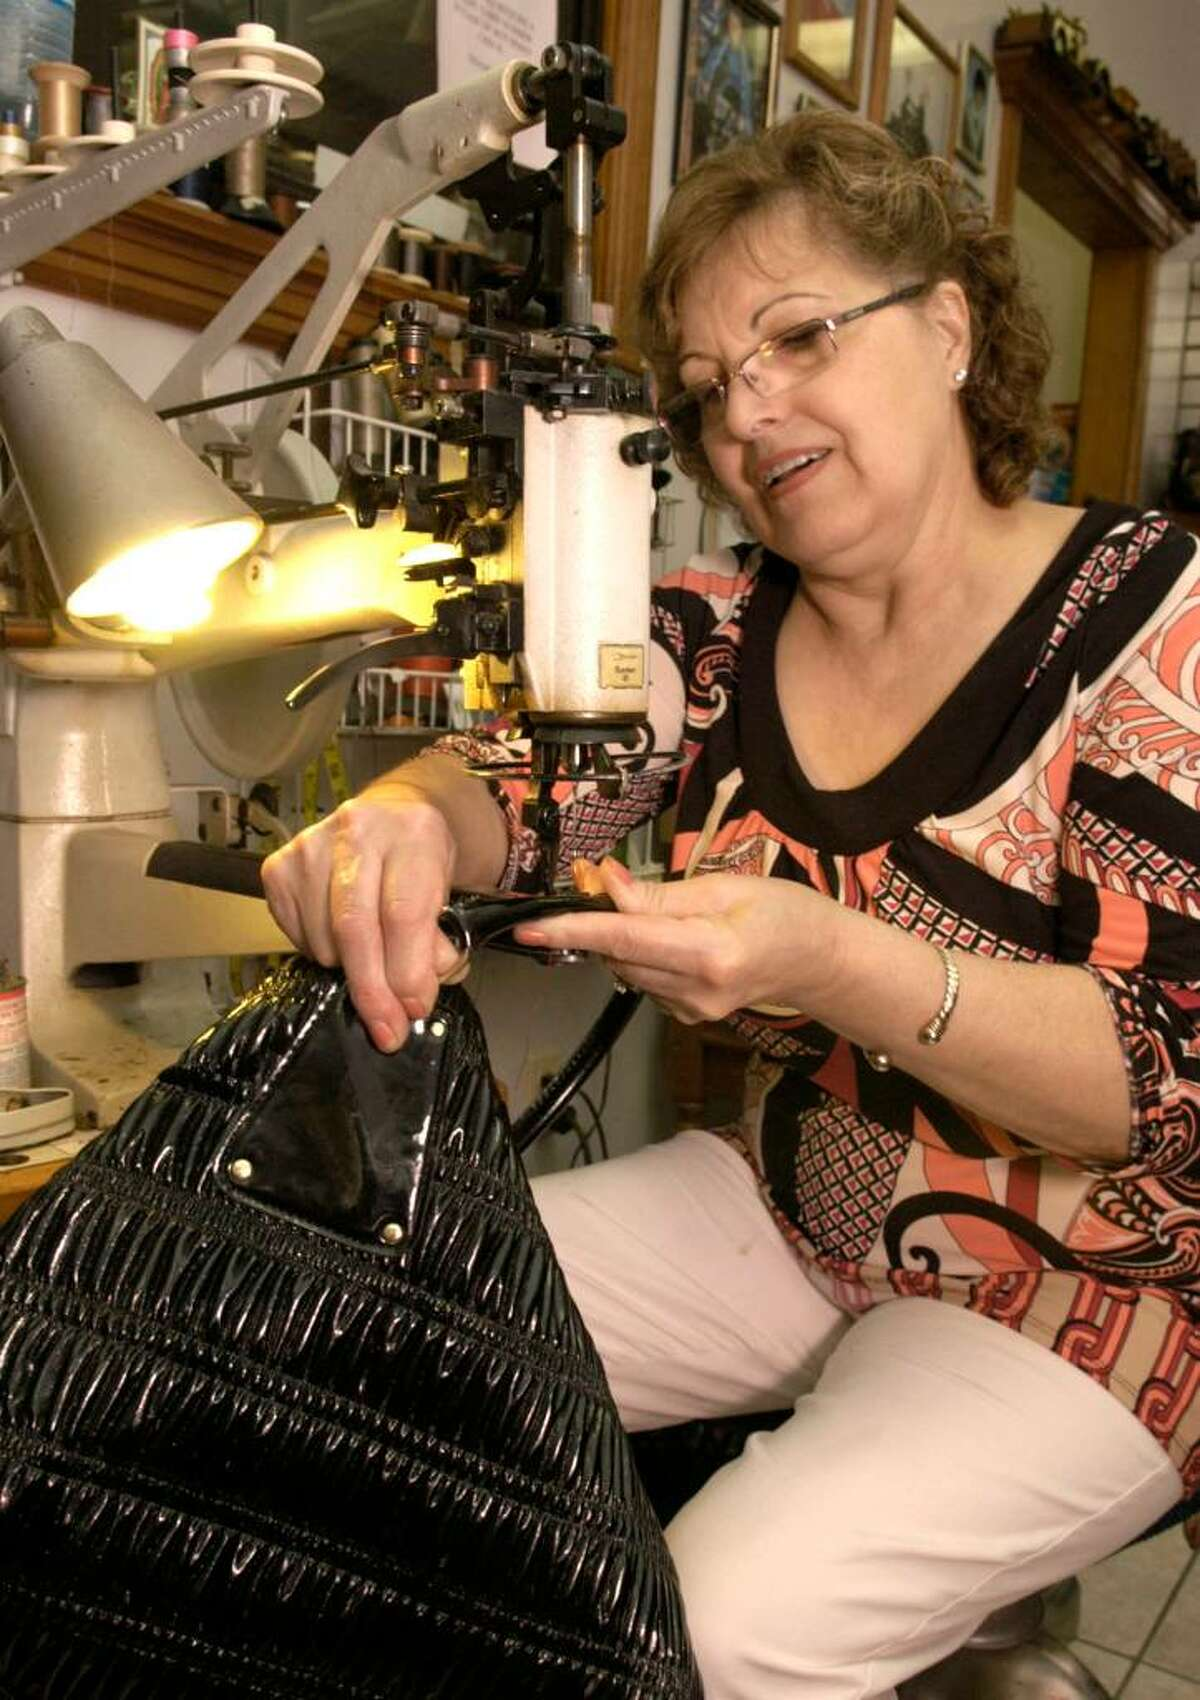 Carol Kaliff/staff photographer. Herminia Moniz has worked with her husband Alvaro since 1986 in their custum shoe and repair business. She runs the counter and does stitching, a skill she learned from her mother. Photo taken August 5, 2009